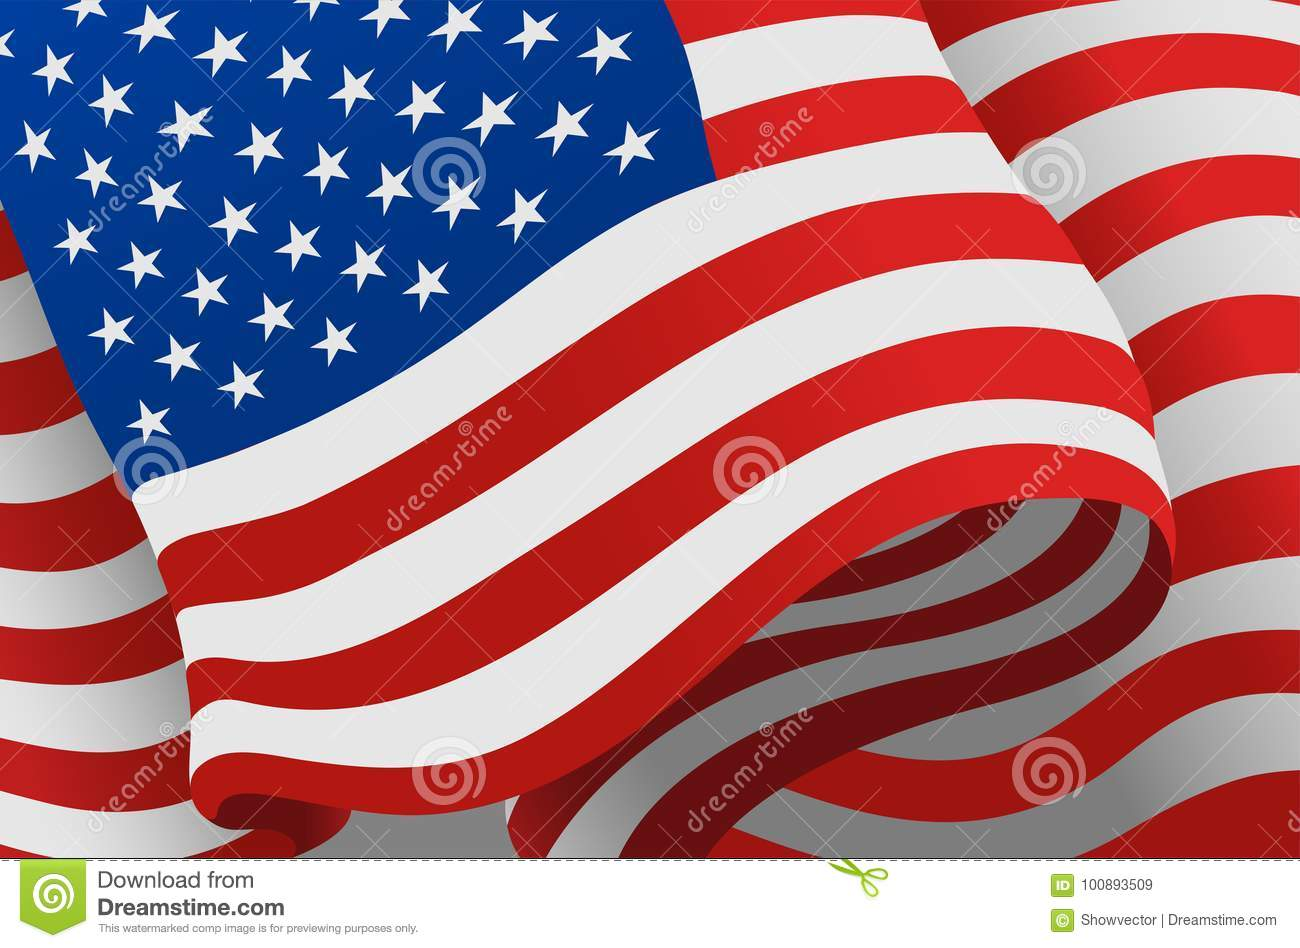 e8d34734fbc0 Independence day USA flags United States american symbol freedom national  sign vector illustration. Wavy patriotic banner shape celebration holiday  symbol.